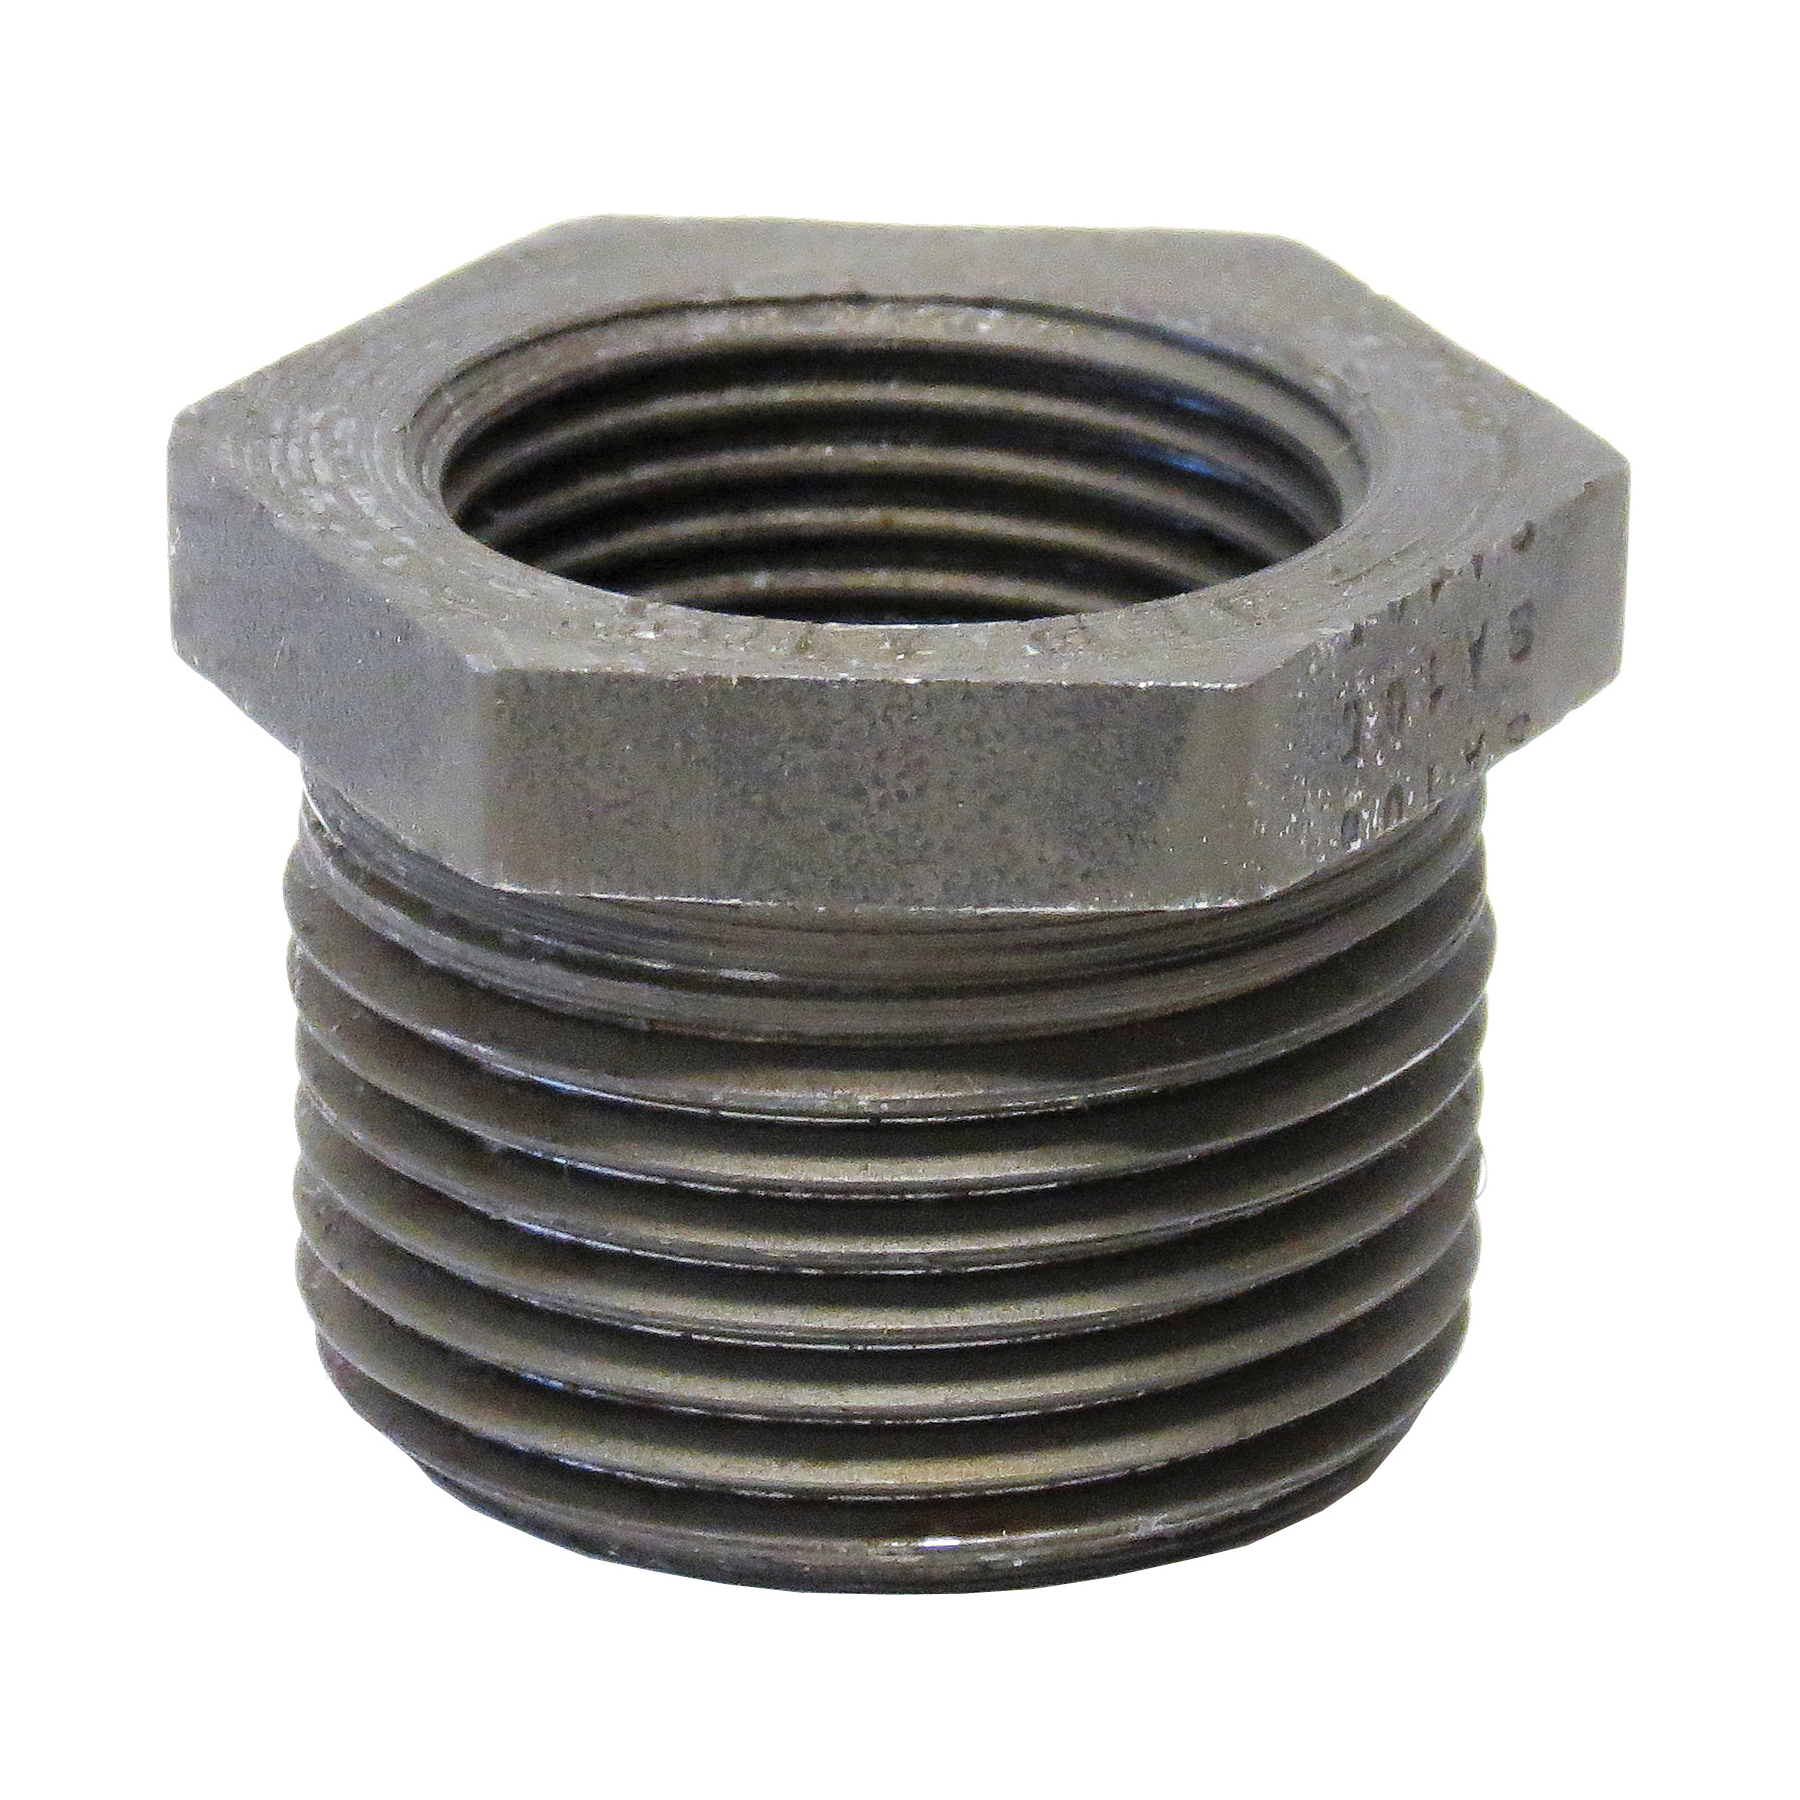 Anvil® 0361332703 FIG 2139 Hex Head Pipe Bushing, 1-1/4 x 1-1/2 in, FNPT x MNPT, 3000 lb, Steel, Domestic